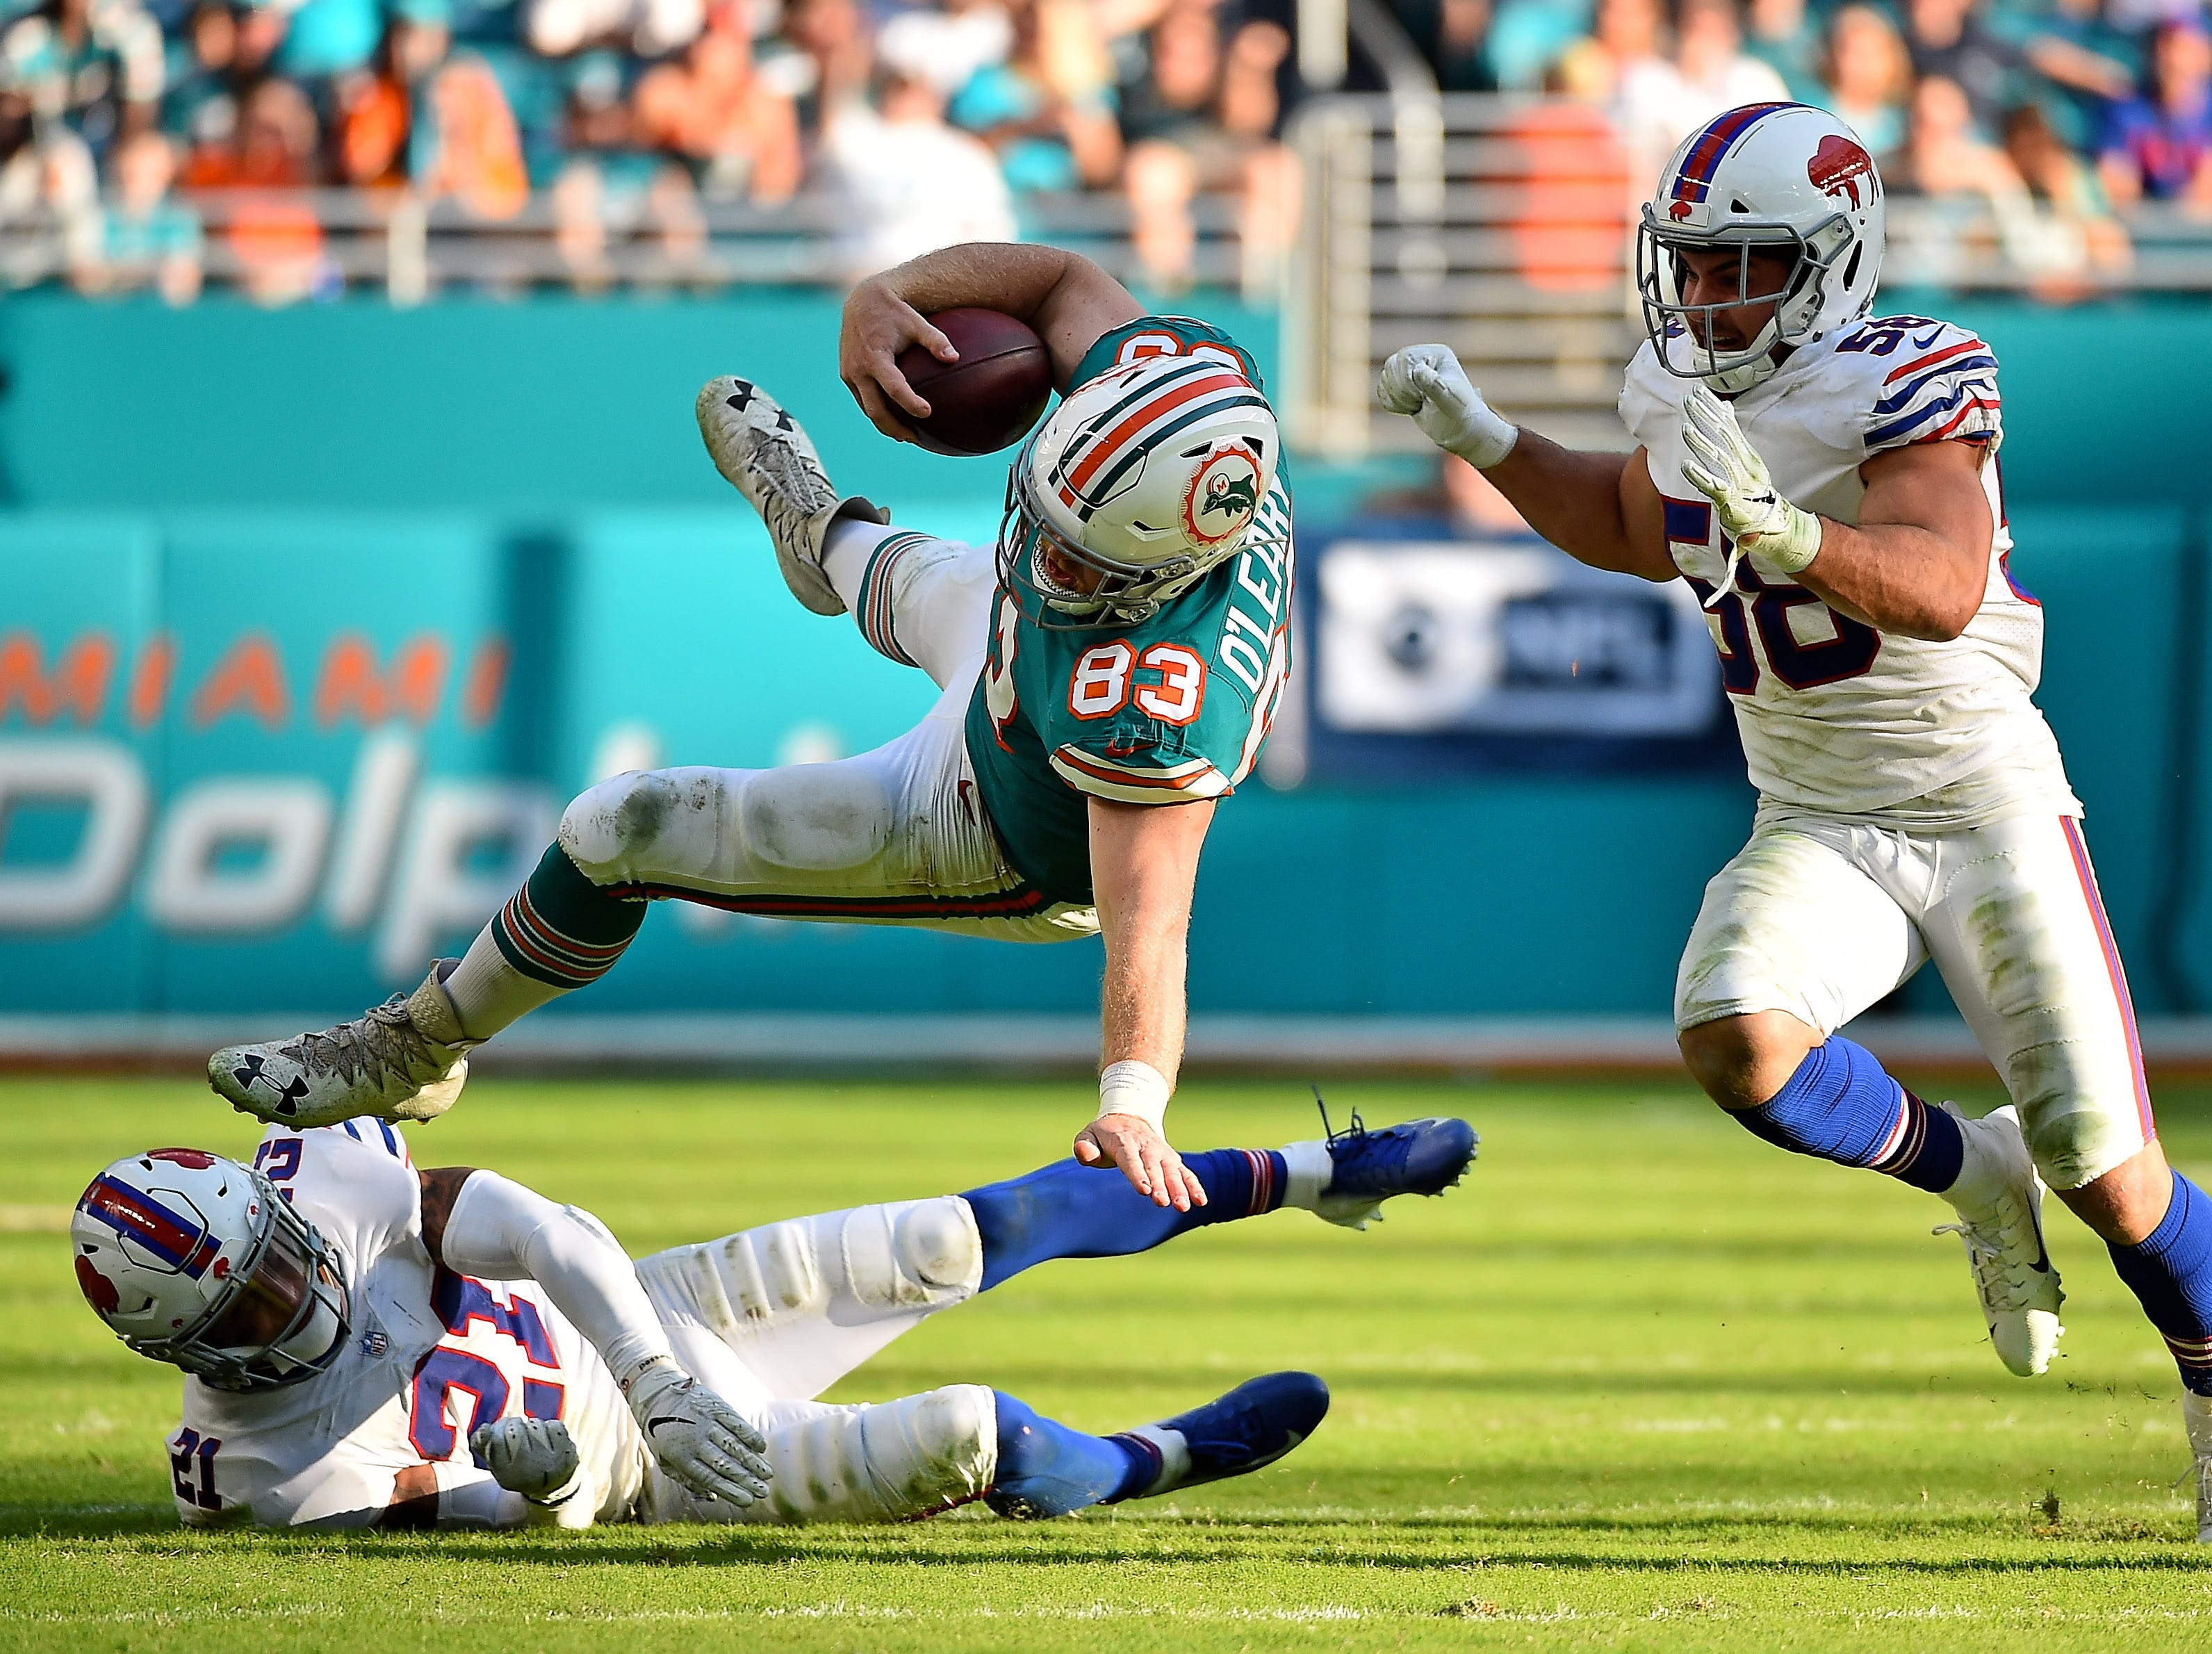 Dec 2, 2018; Miami Gardens, FL, USA; Buffalo Bills free safety Jordan Poyer (21) upends Miami Dolphins tight end Nick O'Leary (83) during the second half at Hard Rock Stadium. Mandatory Credit: Jasen Vinlove-USA TODAY Sports